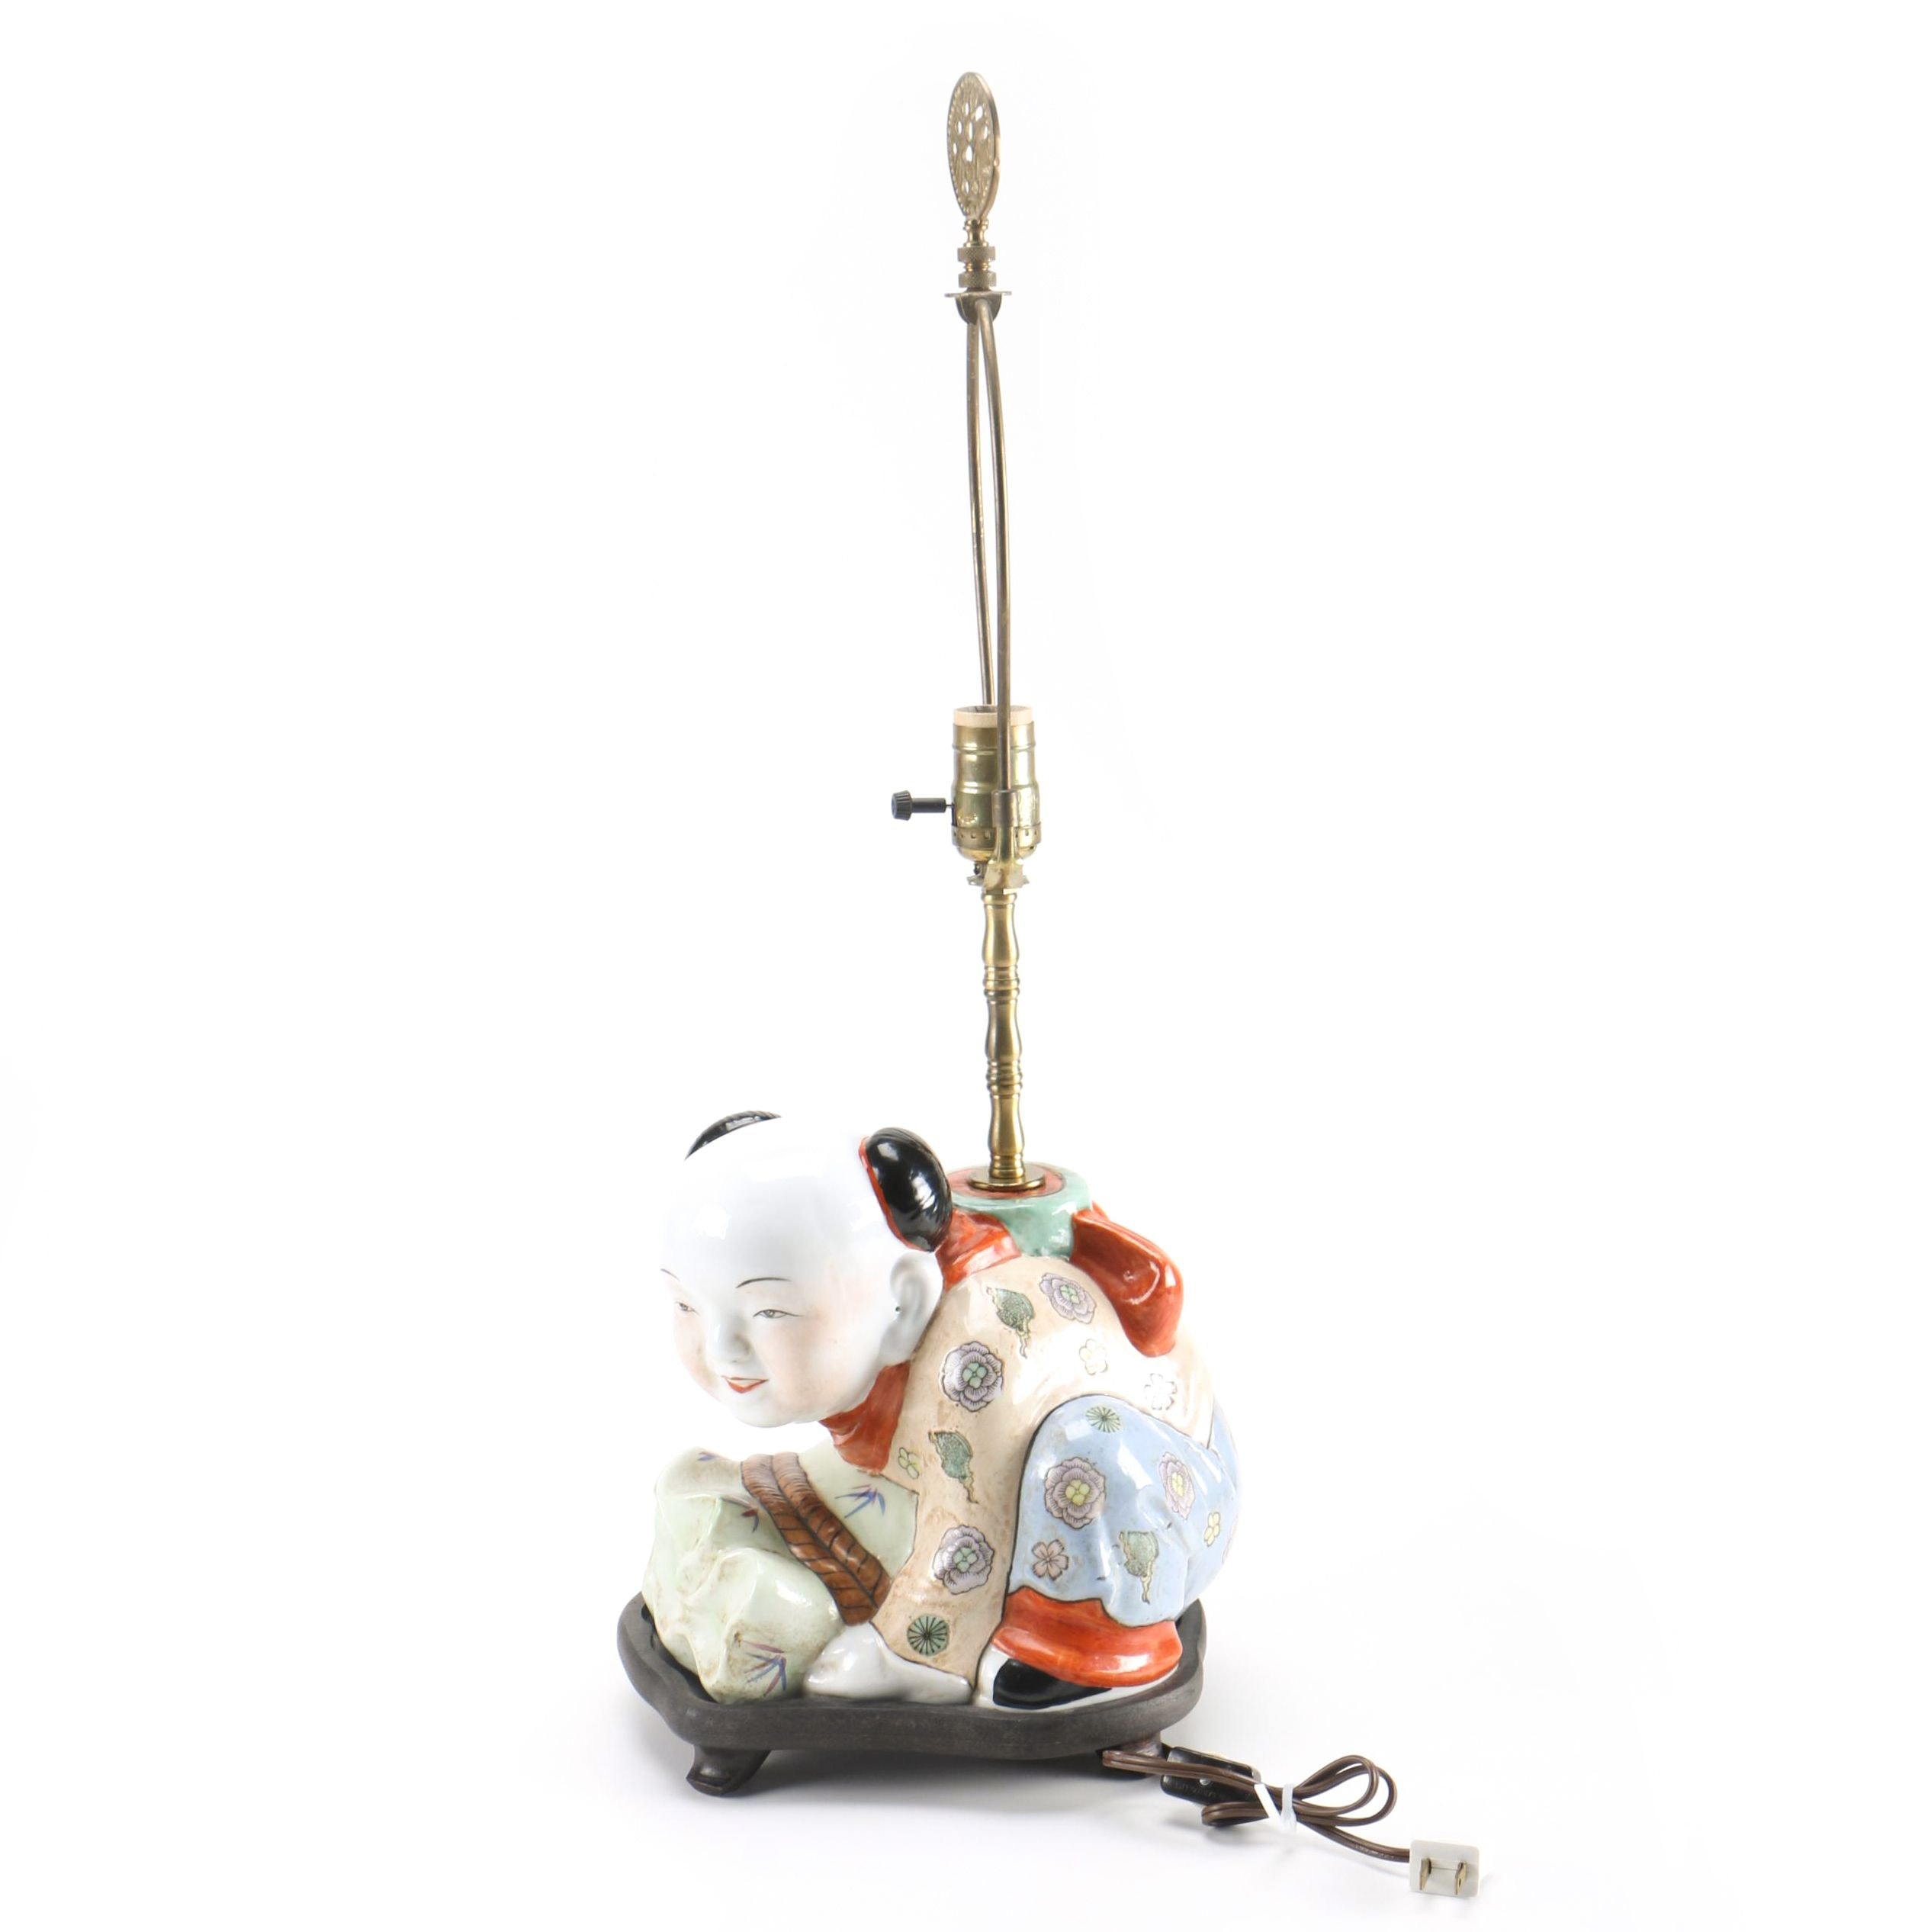 Chinese Crouching Figure Accent Lamp